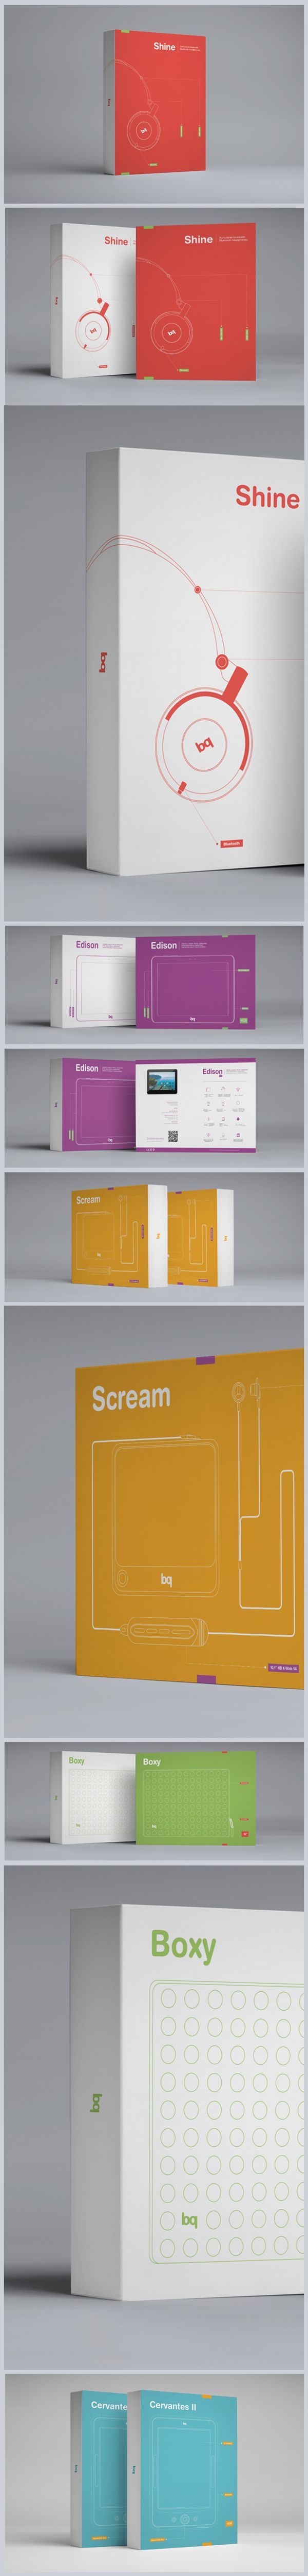 """bq"" Packaging design on Packaging Design Served"